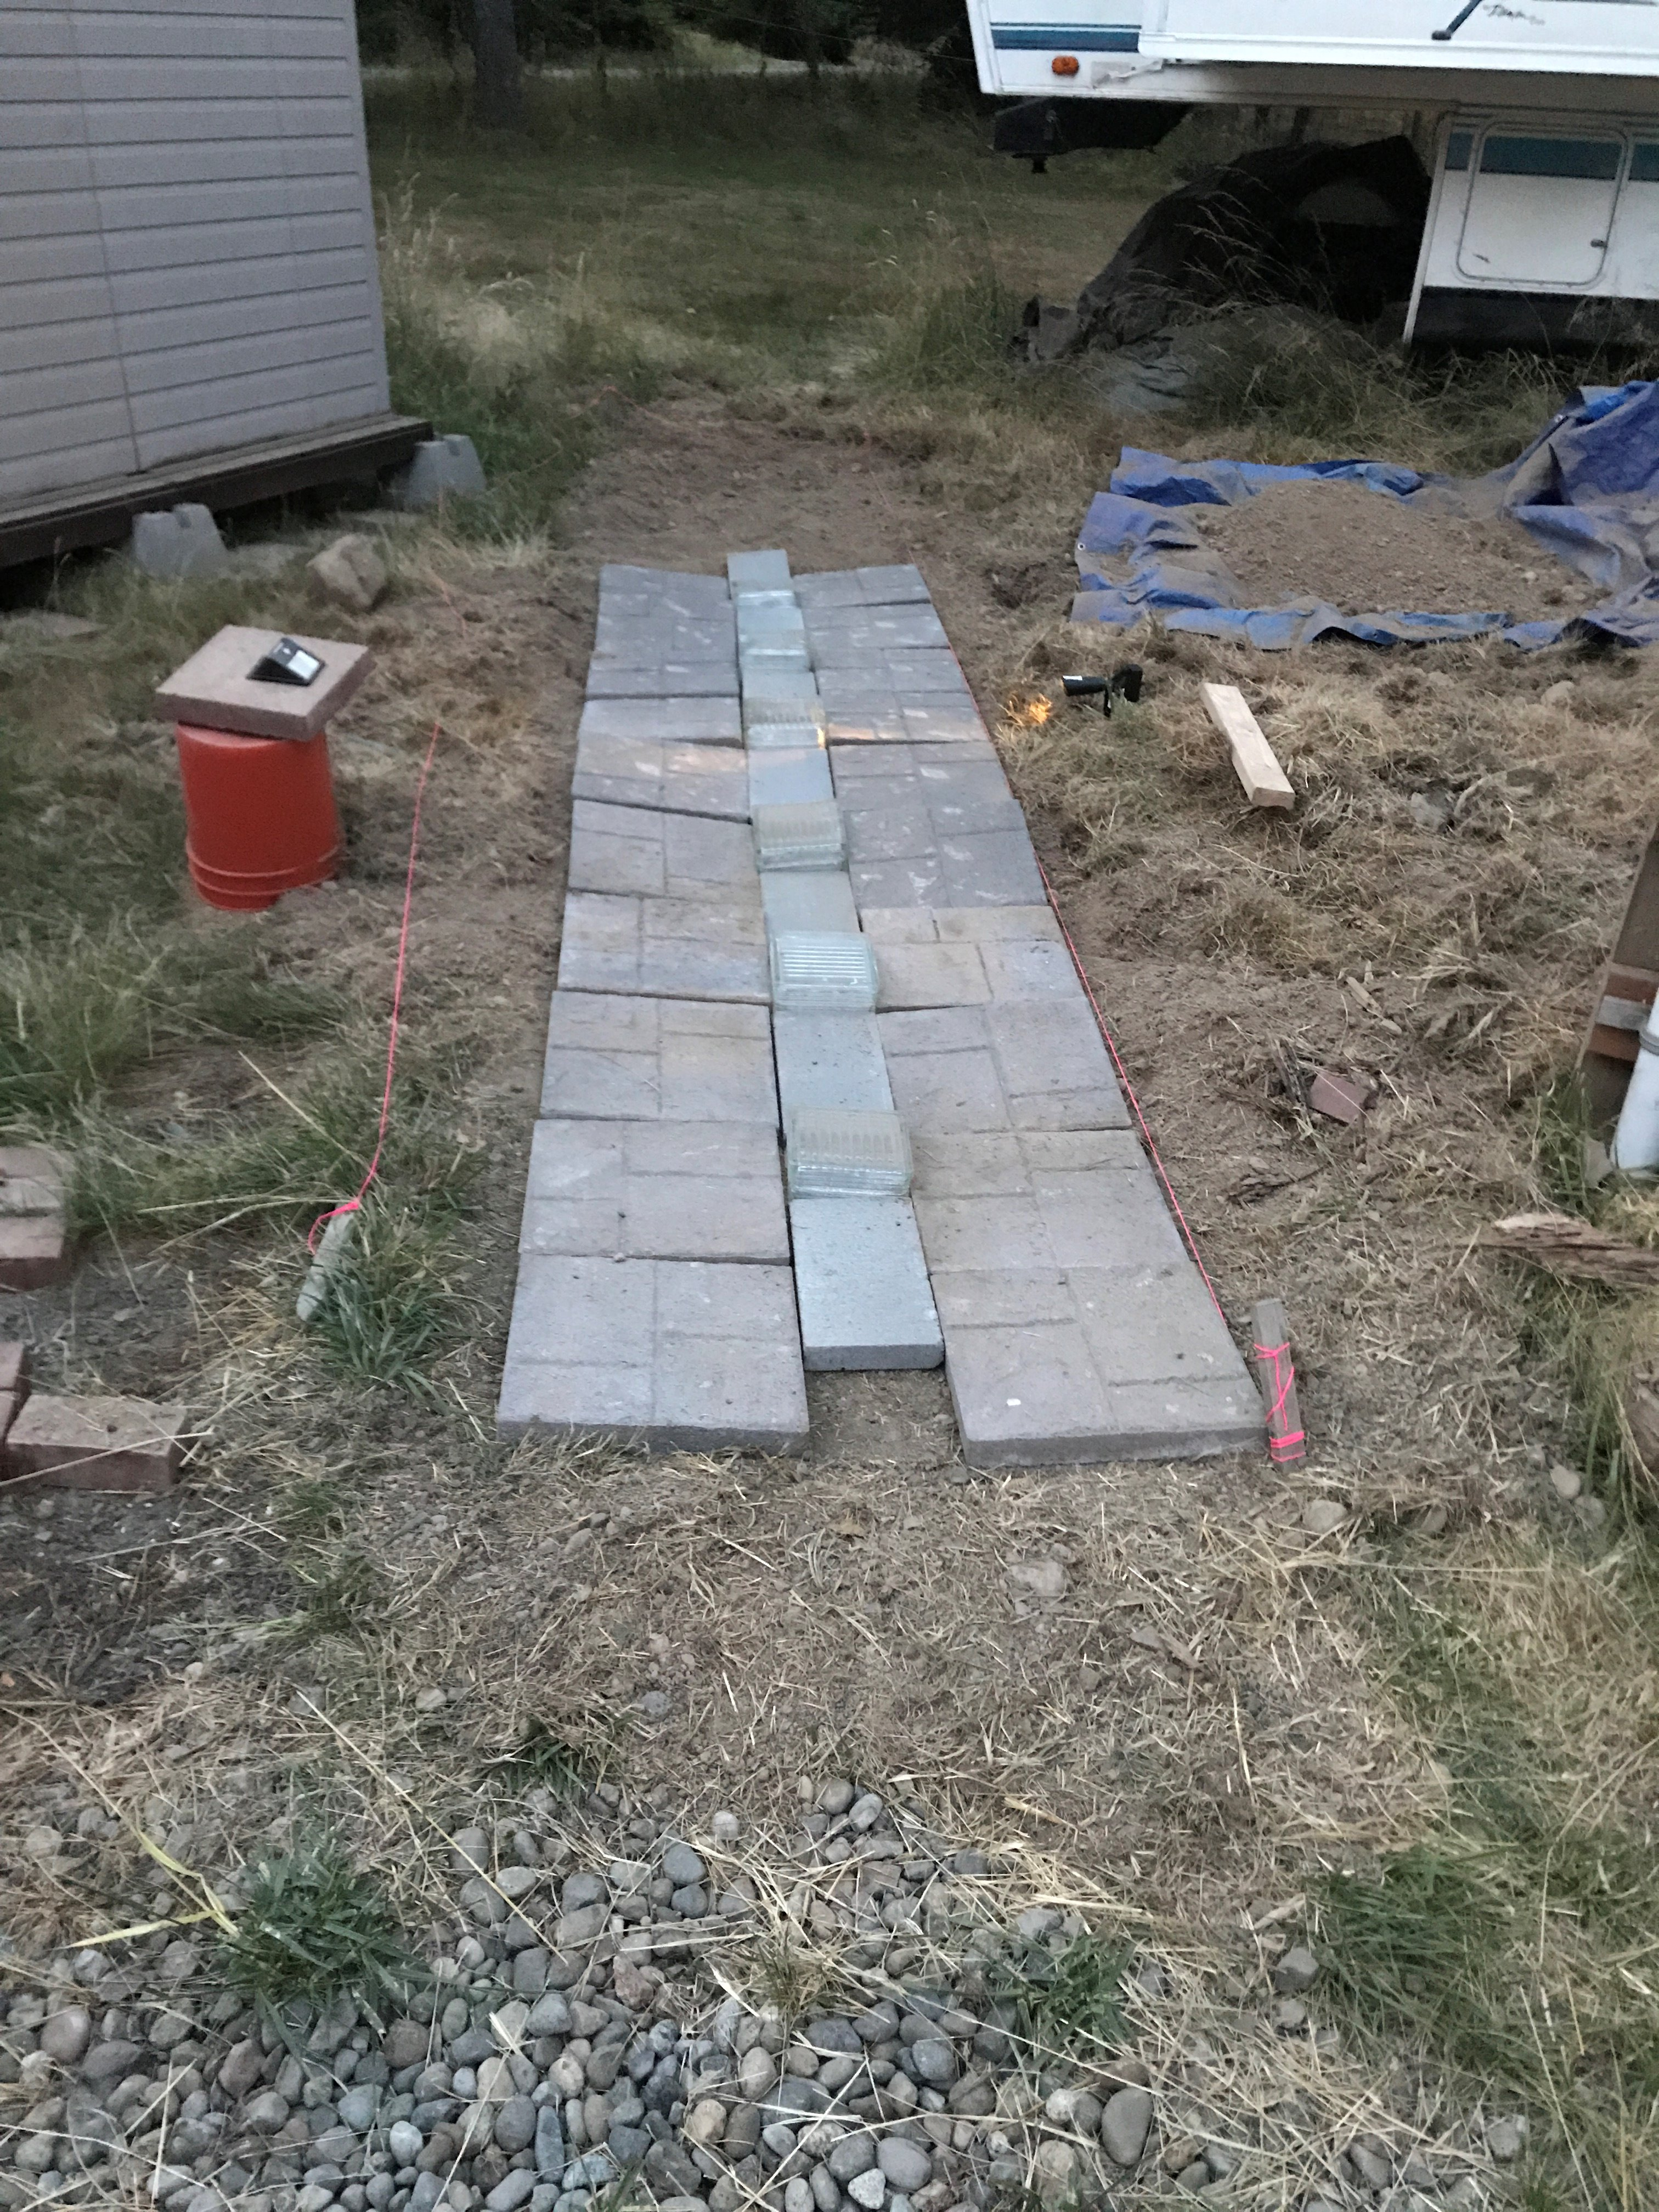 Picture of Basics of Making a Paver Based Pathway - Part 1 Prepping and Digging.